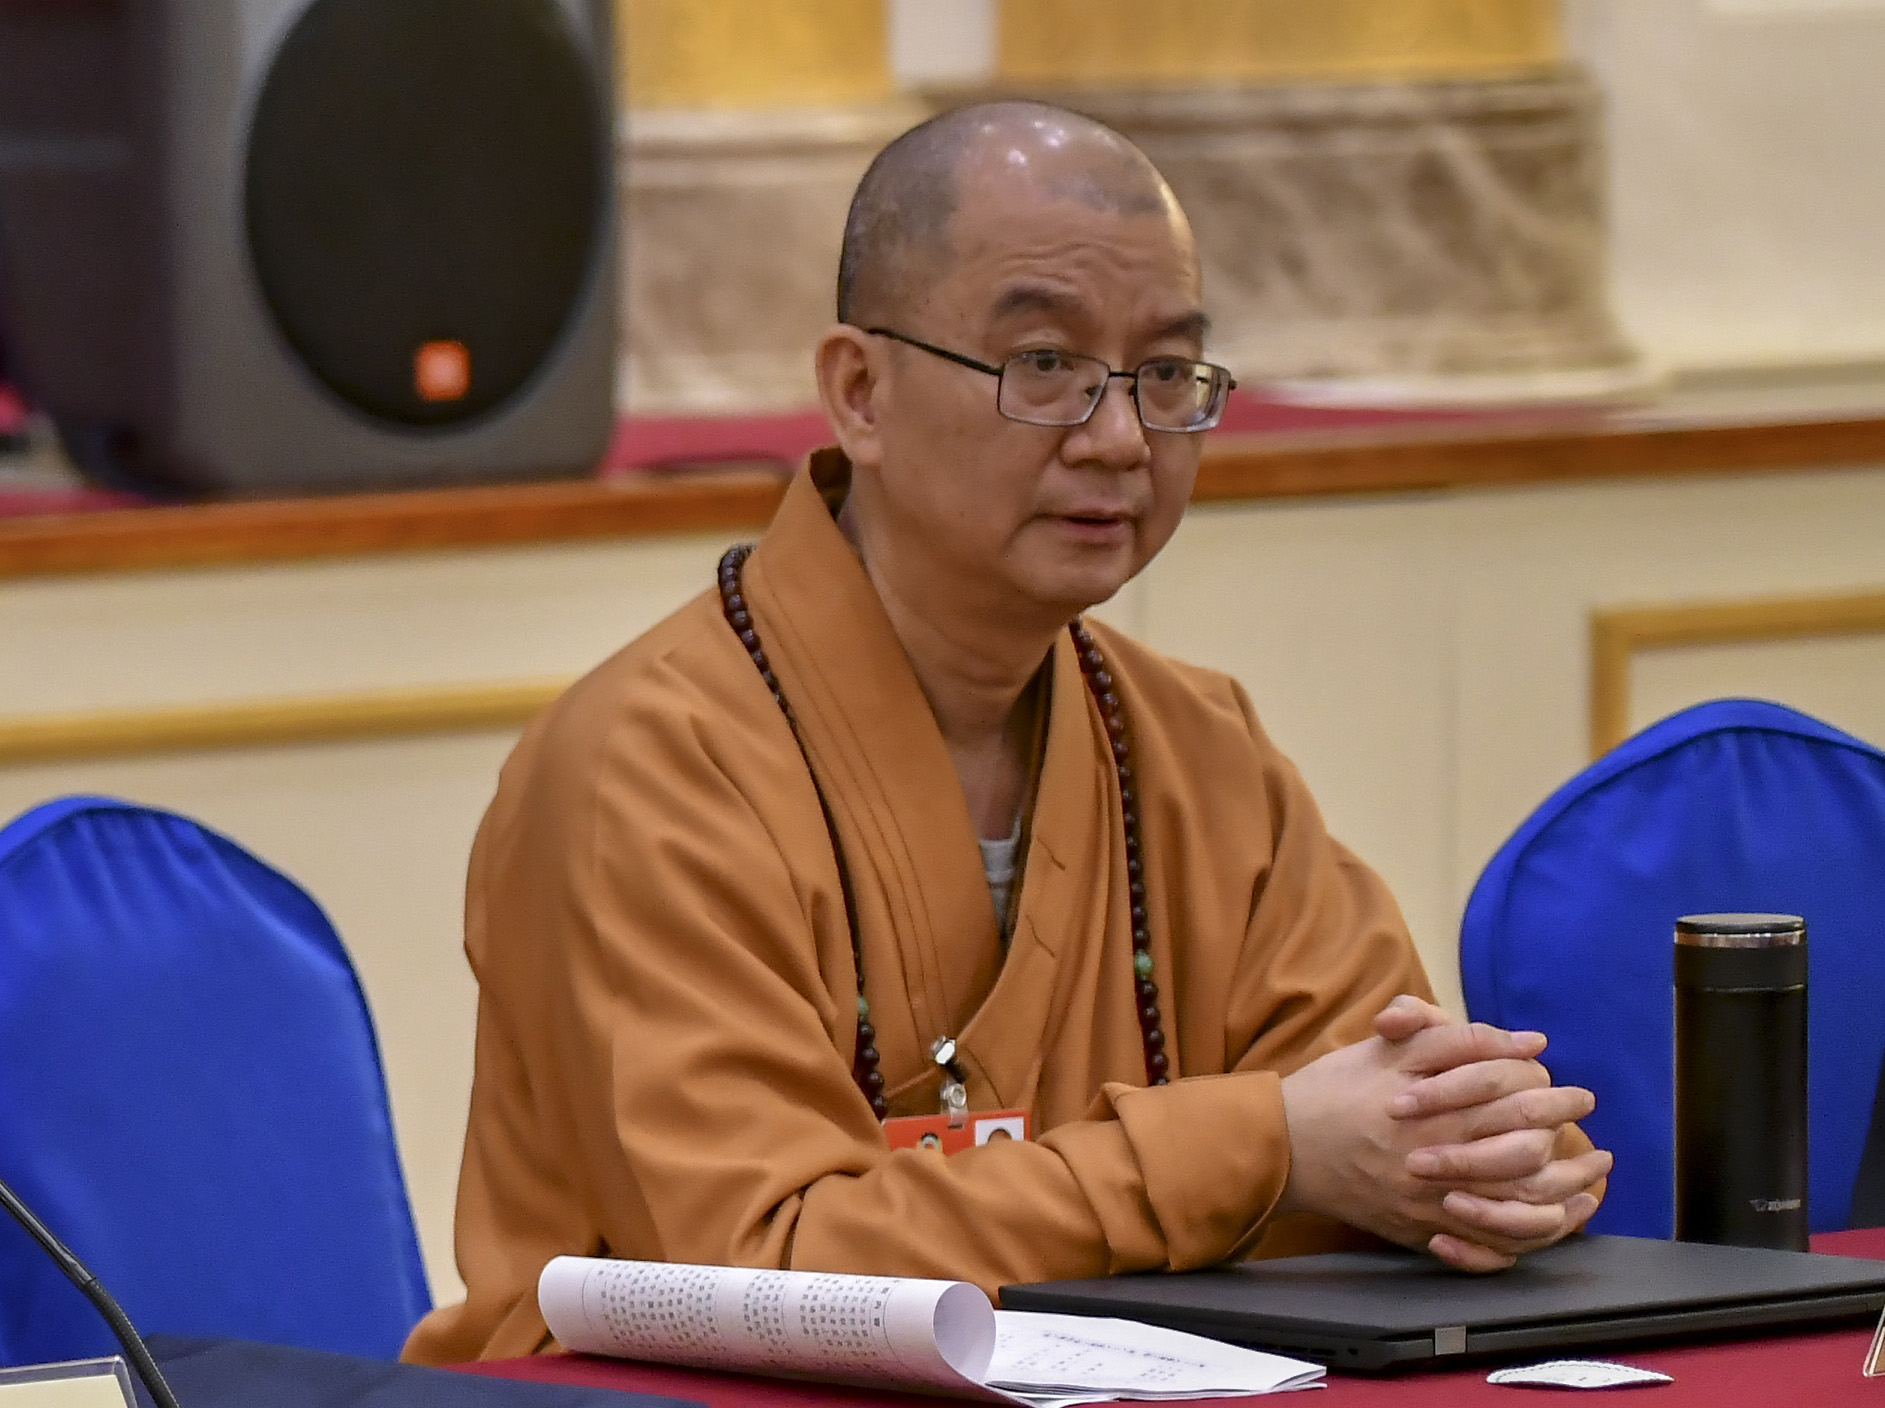 Xuecheng, abbot of Longquan Temple, attends a panel discussion in Beijing on March 7, 2018.